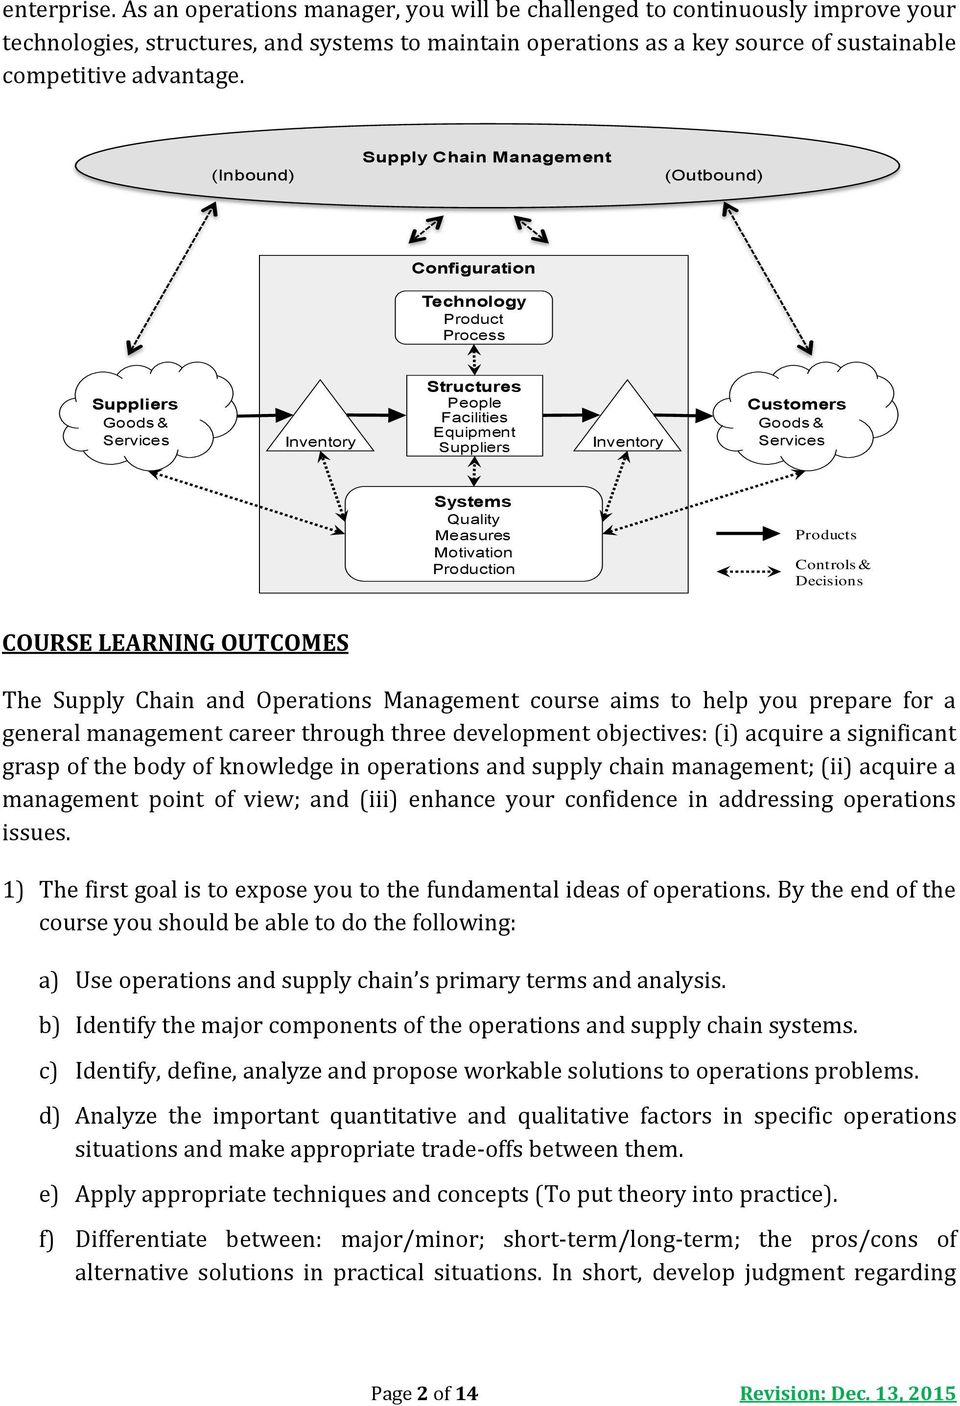 course outline of production operation management The primary objective of the course is to provide the students with an understanding of the theories, models, problems, issues, and techniques related to the.